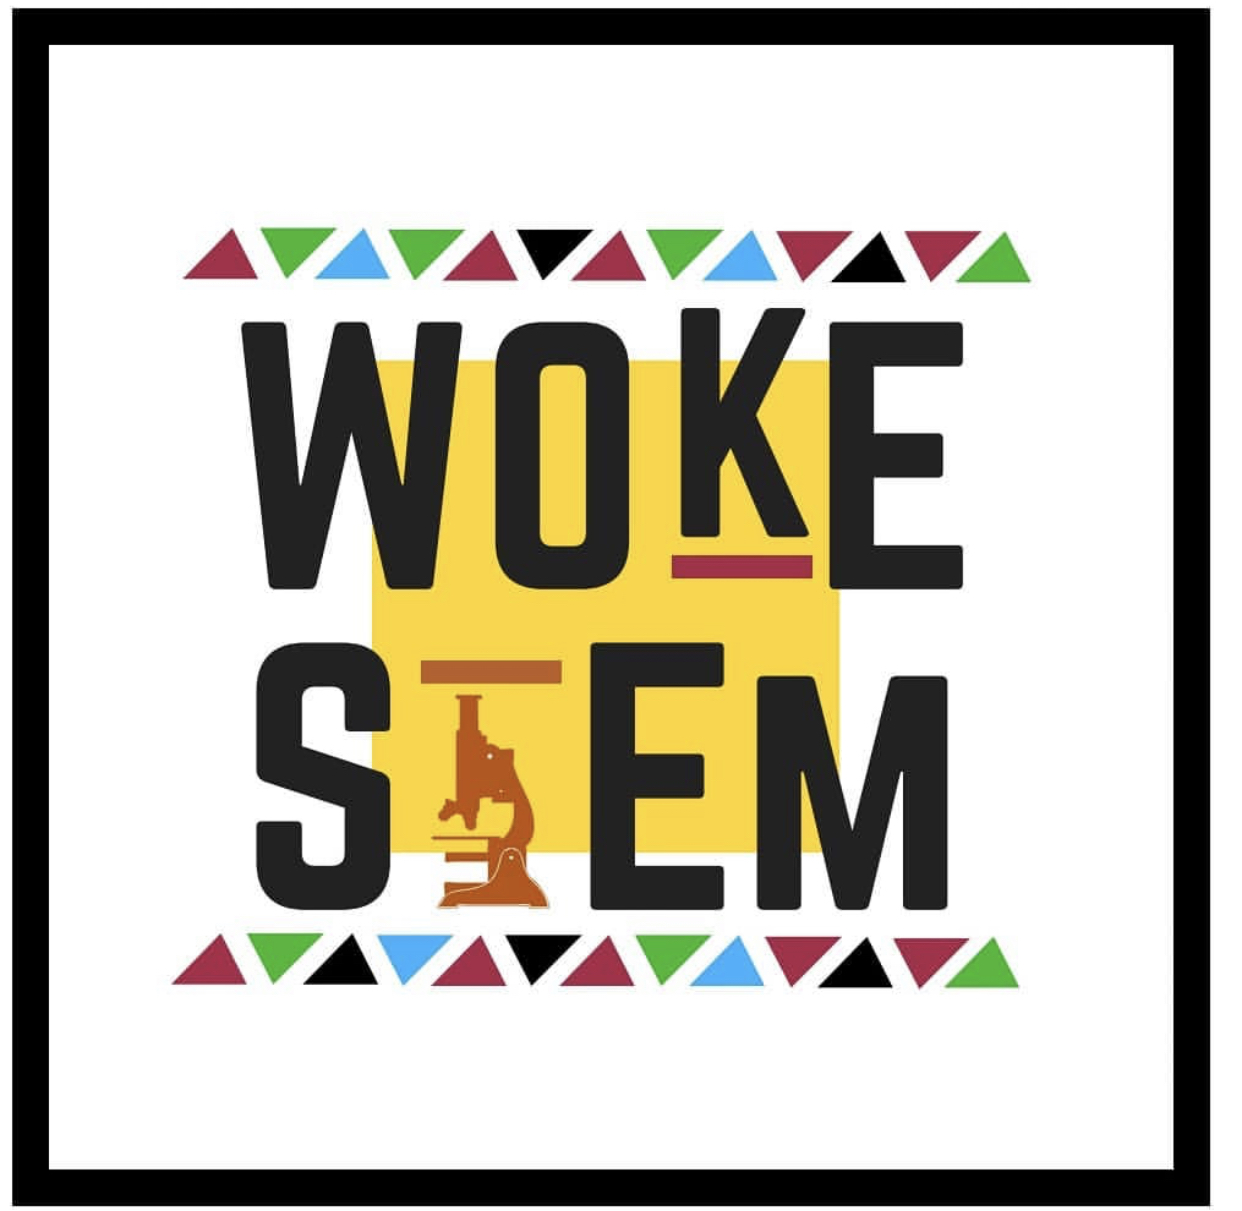 wokeSTEM - WokeSTEM is a creative response to the lack of diversity, social equity and inclusive cultures for minoritized people in STEM. Through their YouTube channel, they aim to to visually amplifying Black voices and experiences in STEM.